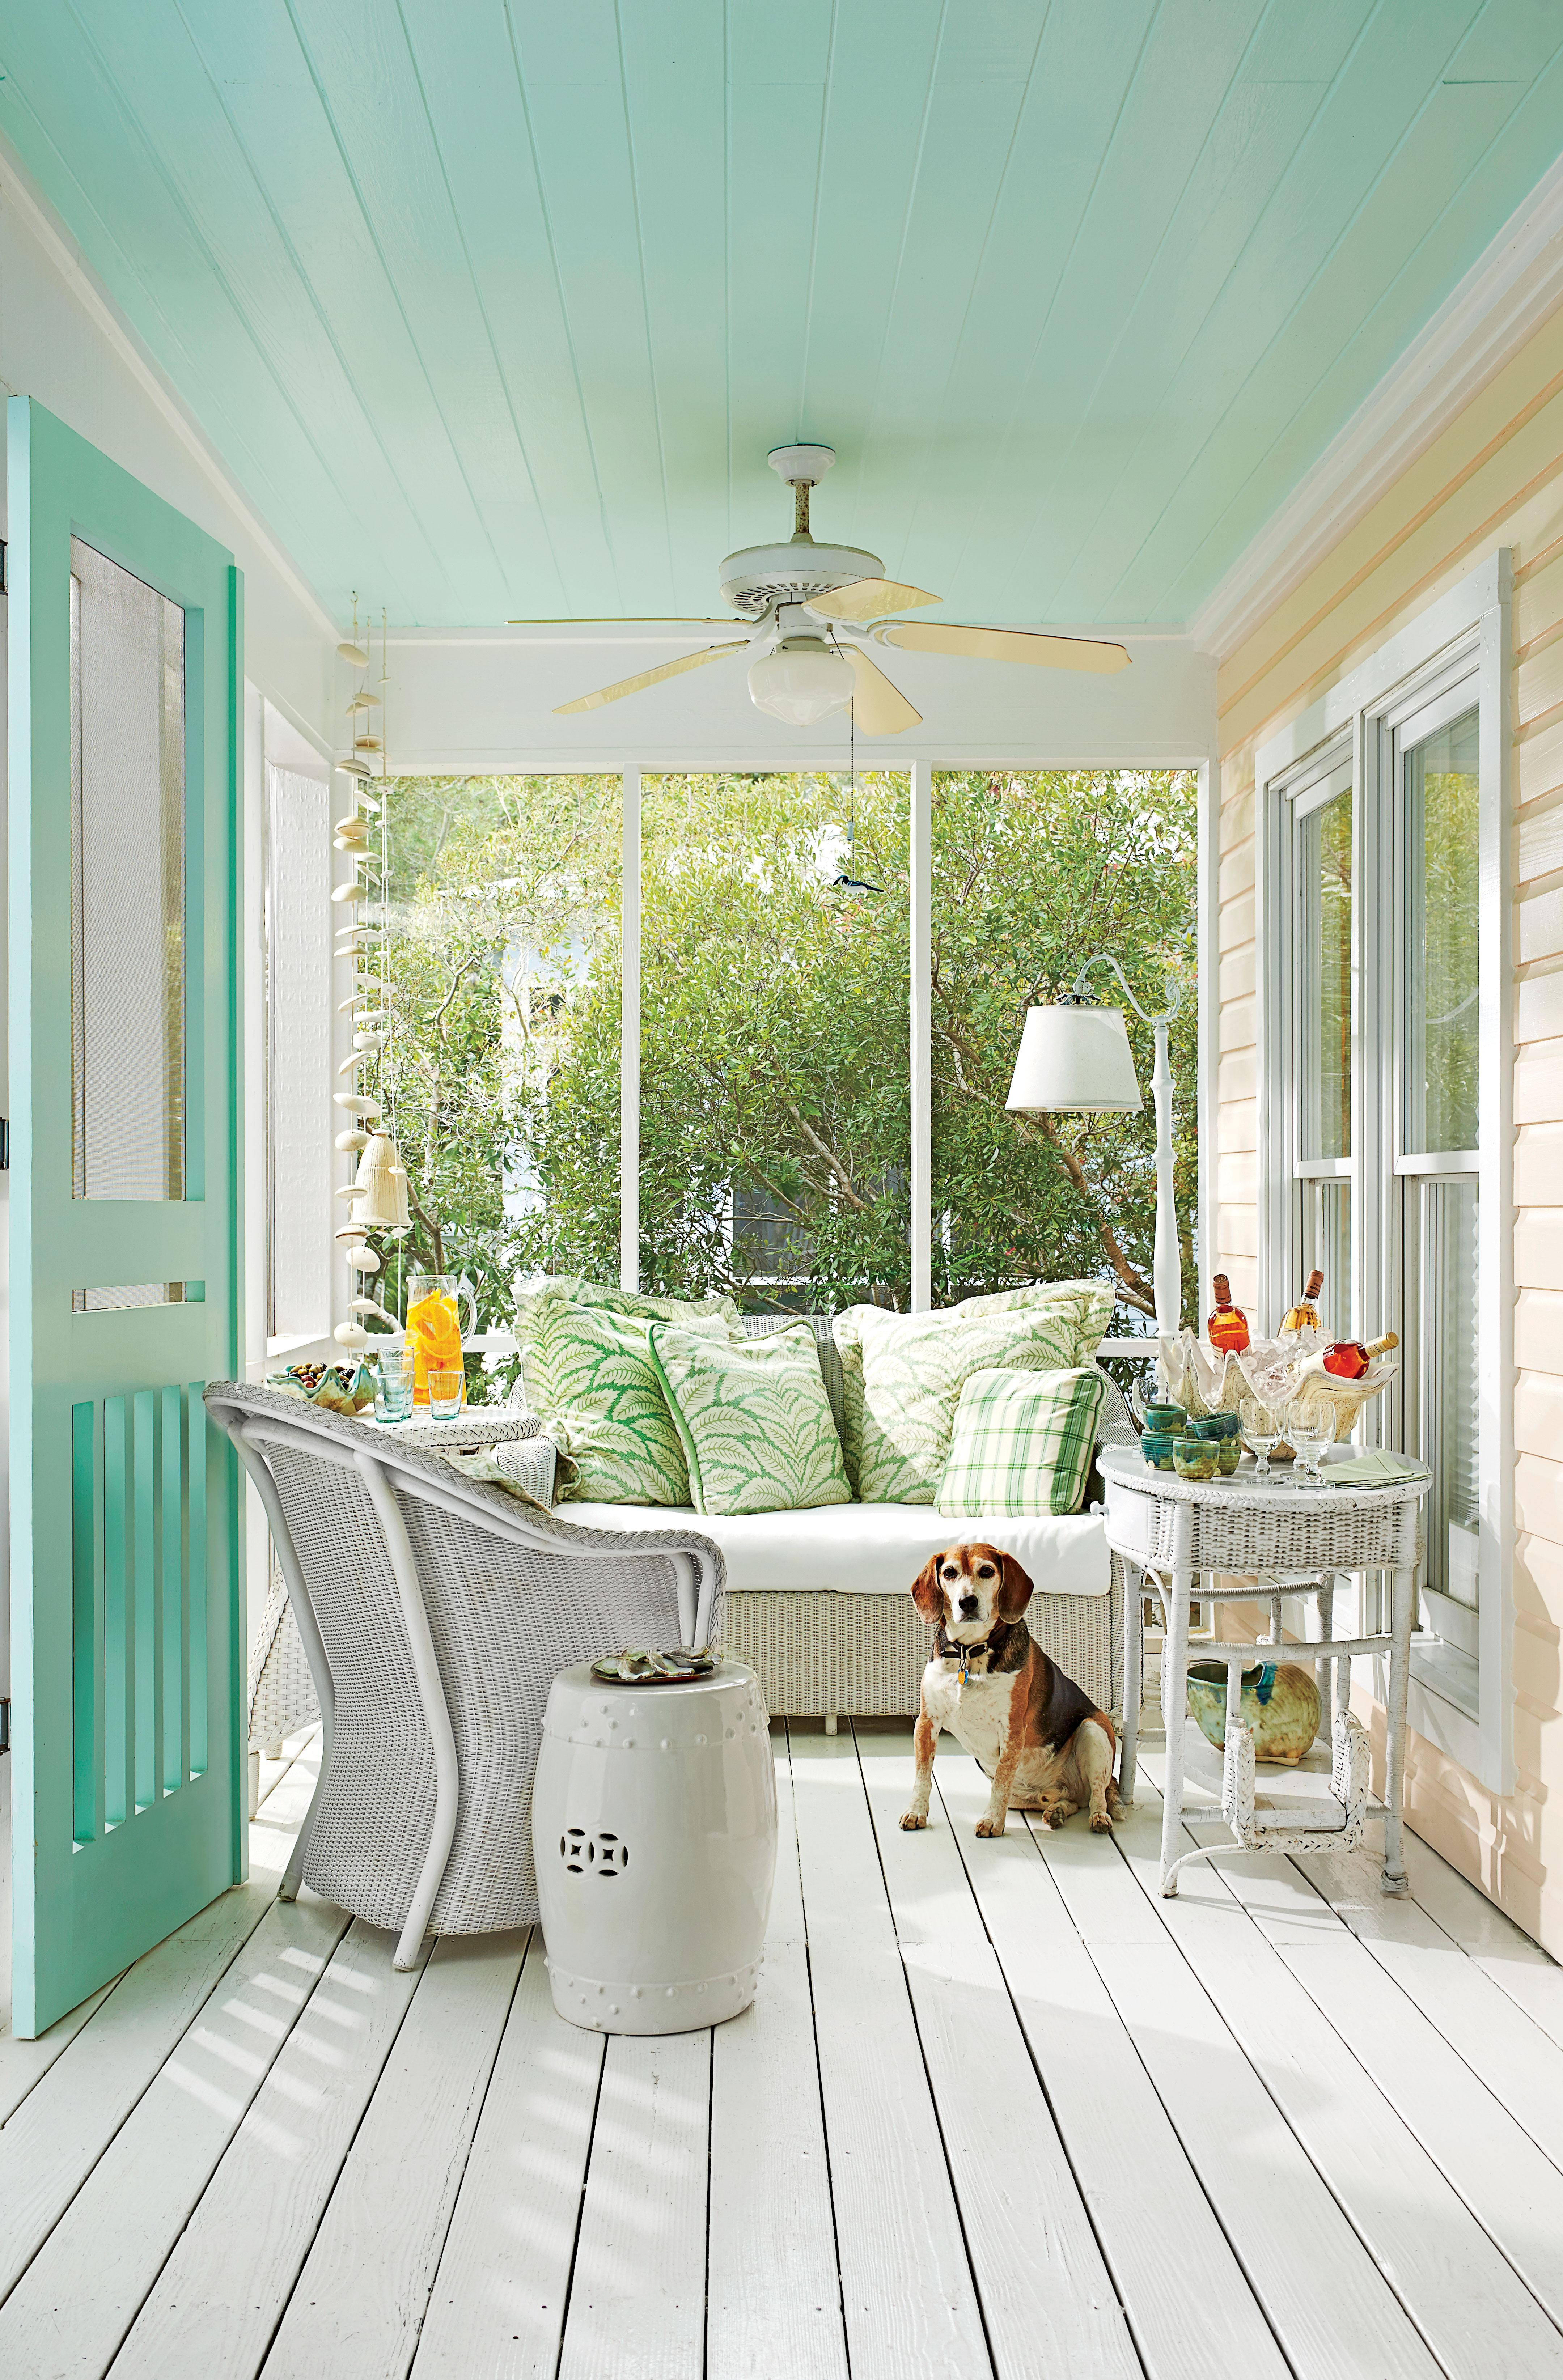 <p>This comfortable porch is the perfect spot for sipping a glass of wine on a breezy, warm evening.</p>